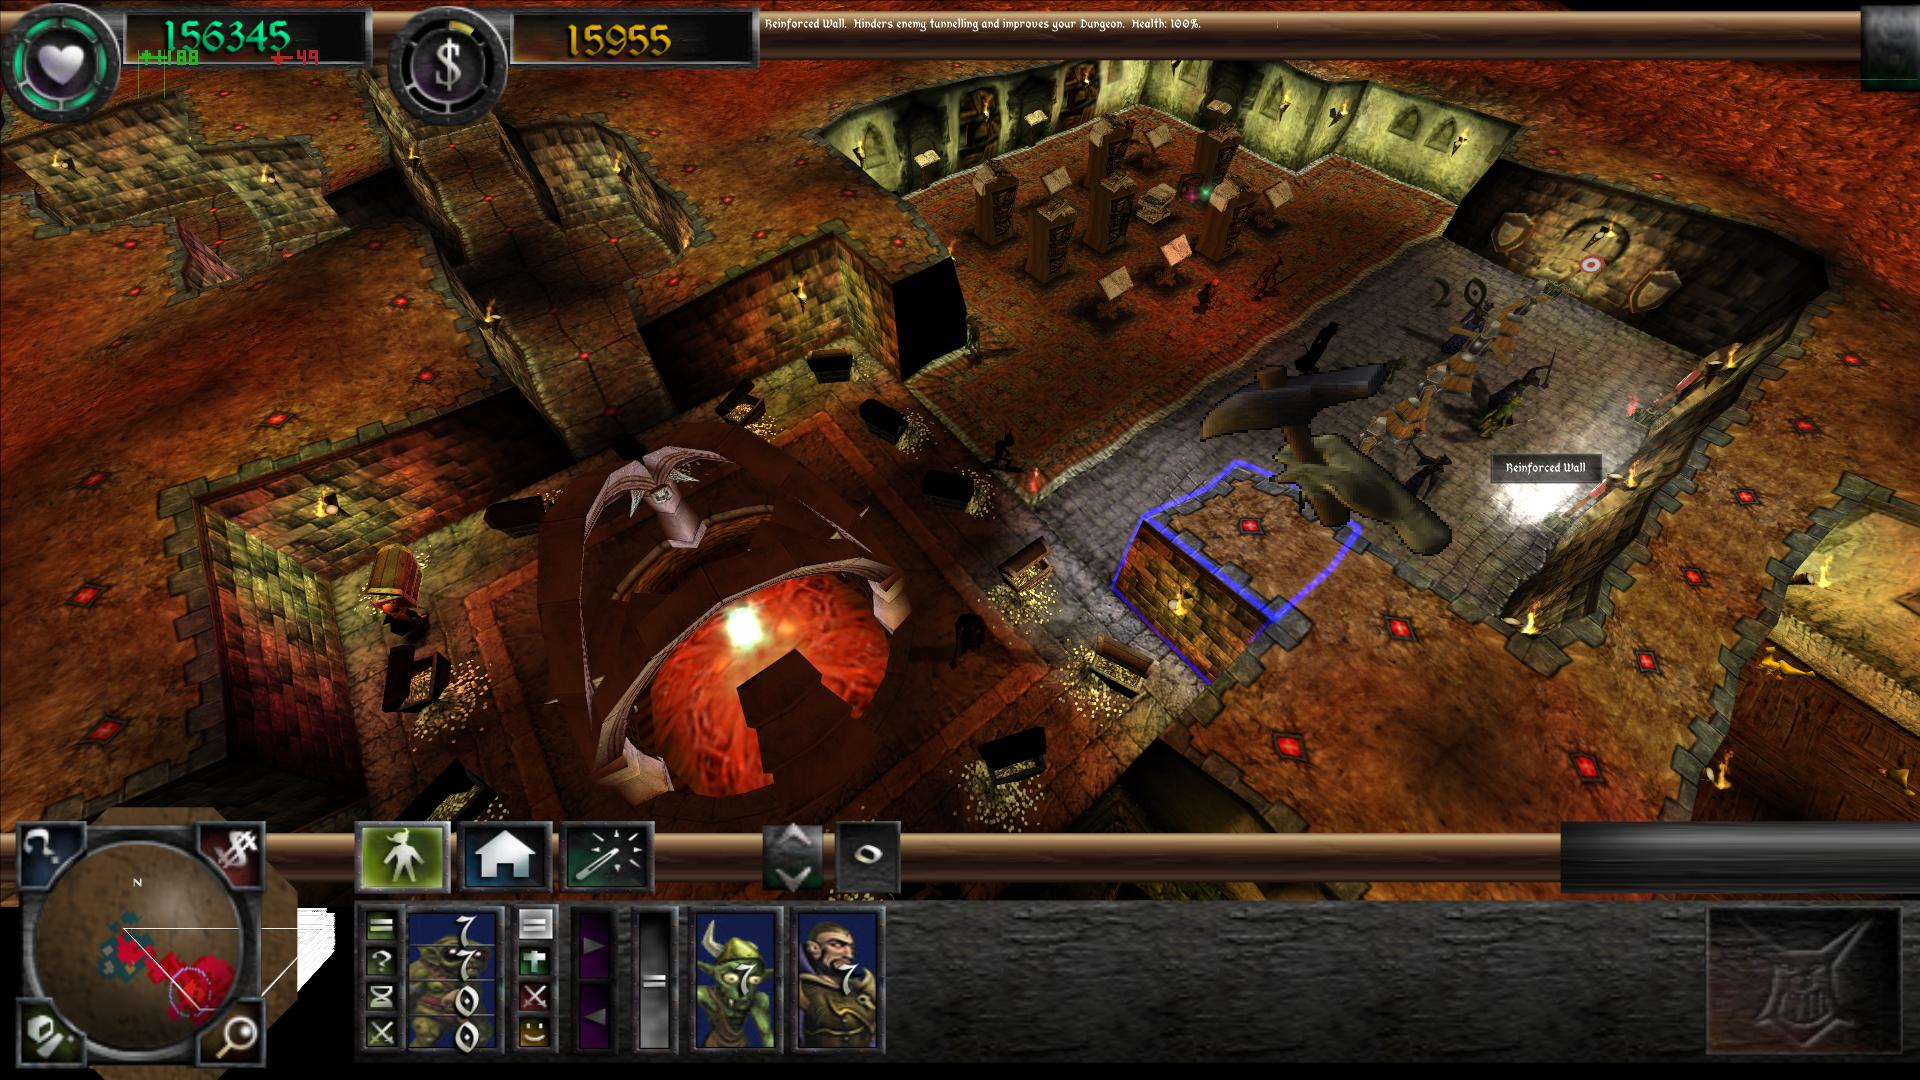 dungeon-keeper-2-screenshot3-1080p.jpg